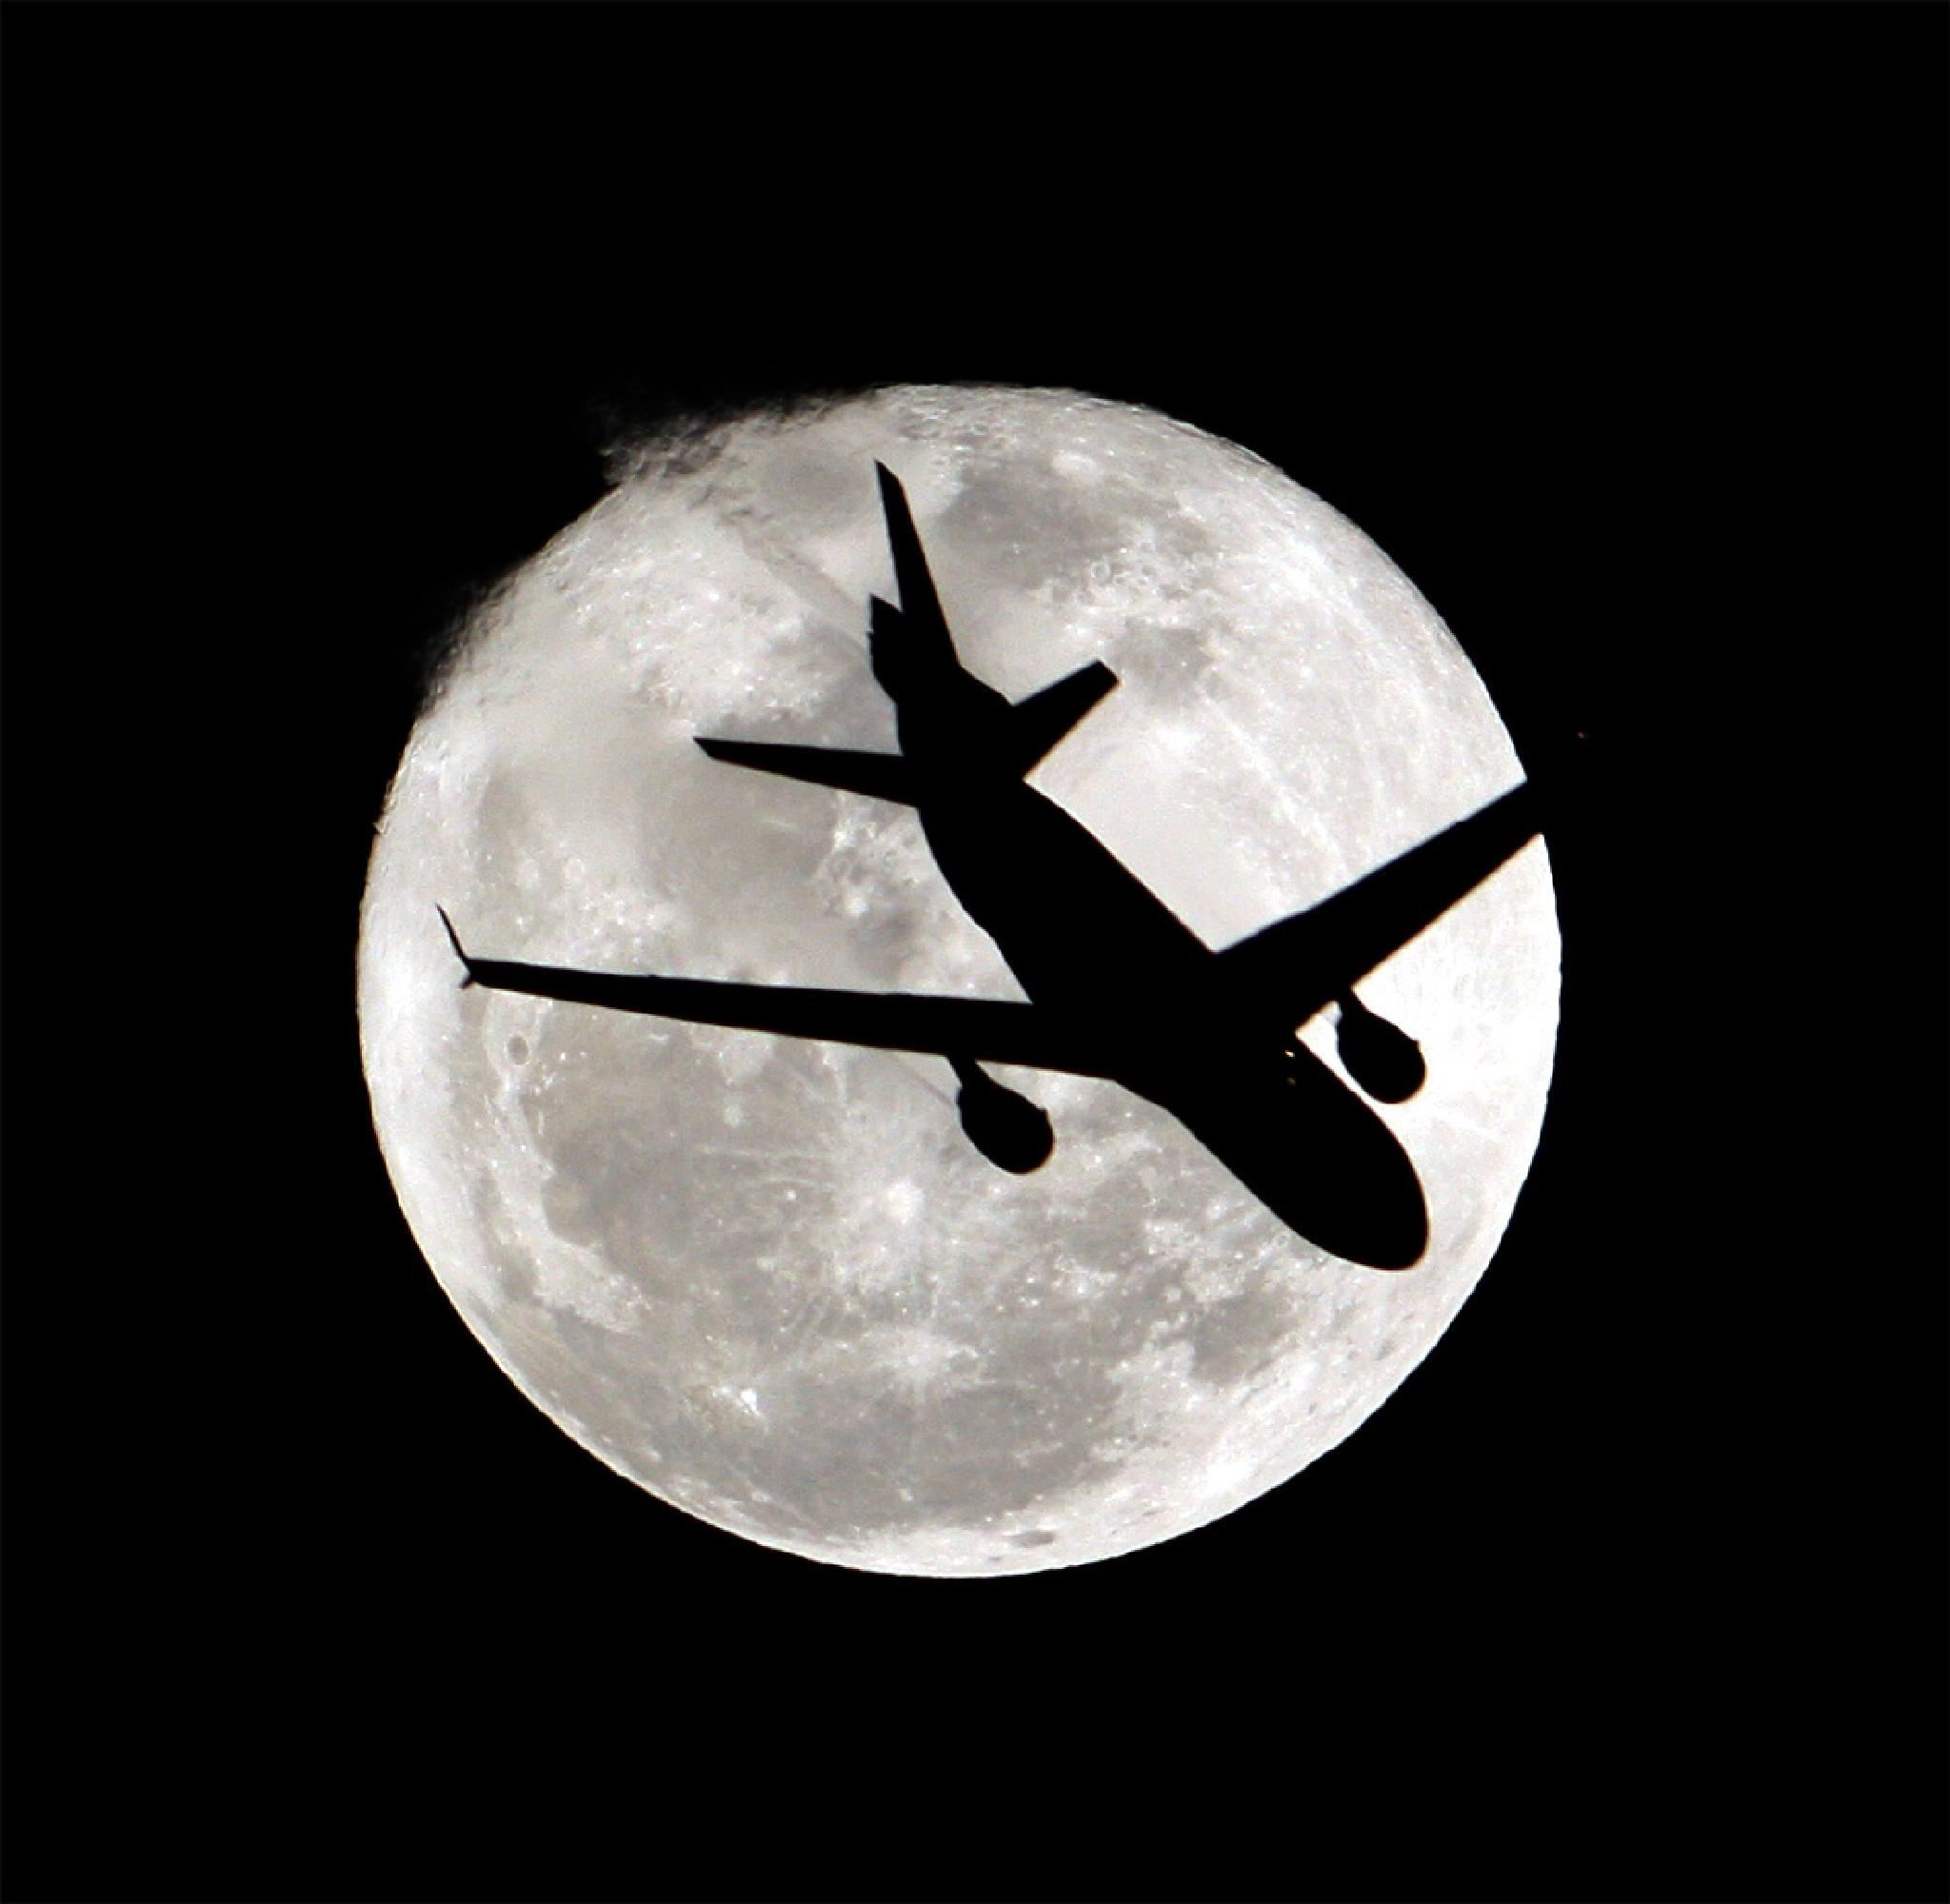 The Plane on the Moon by tangyuiching